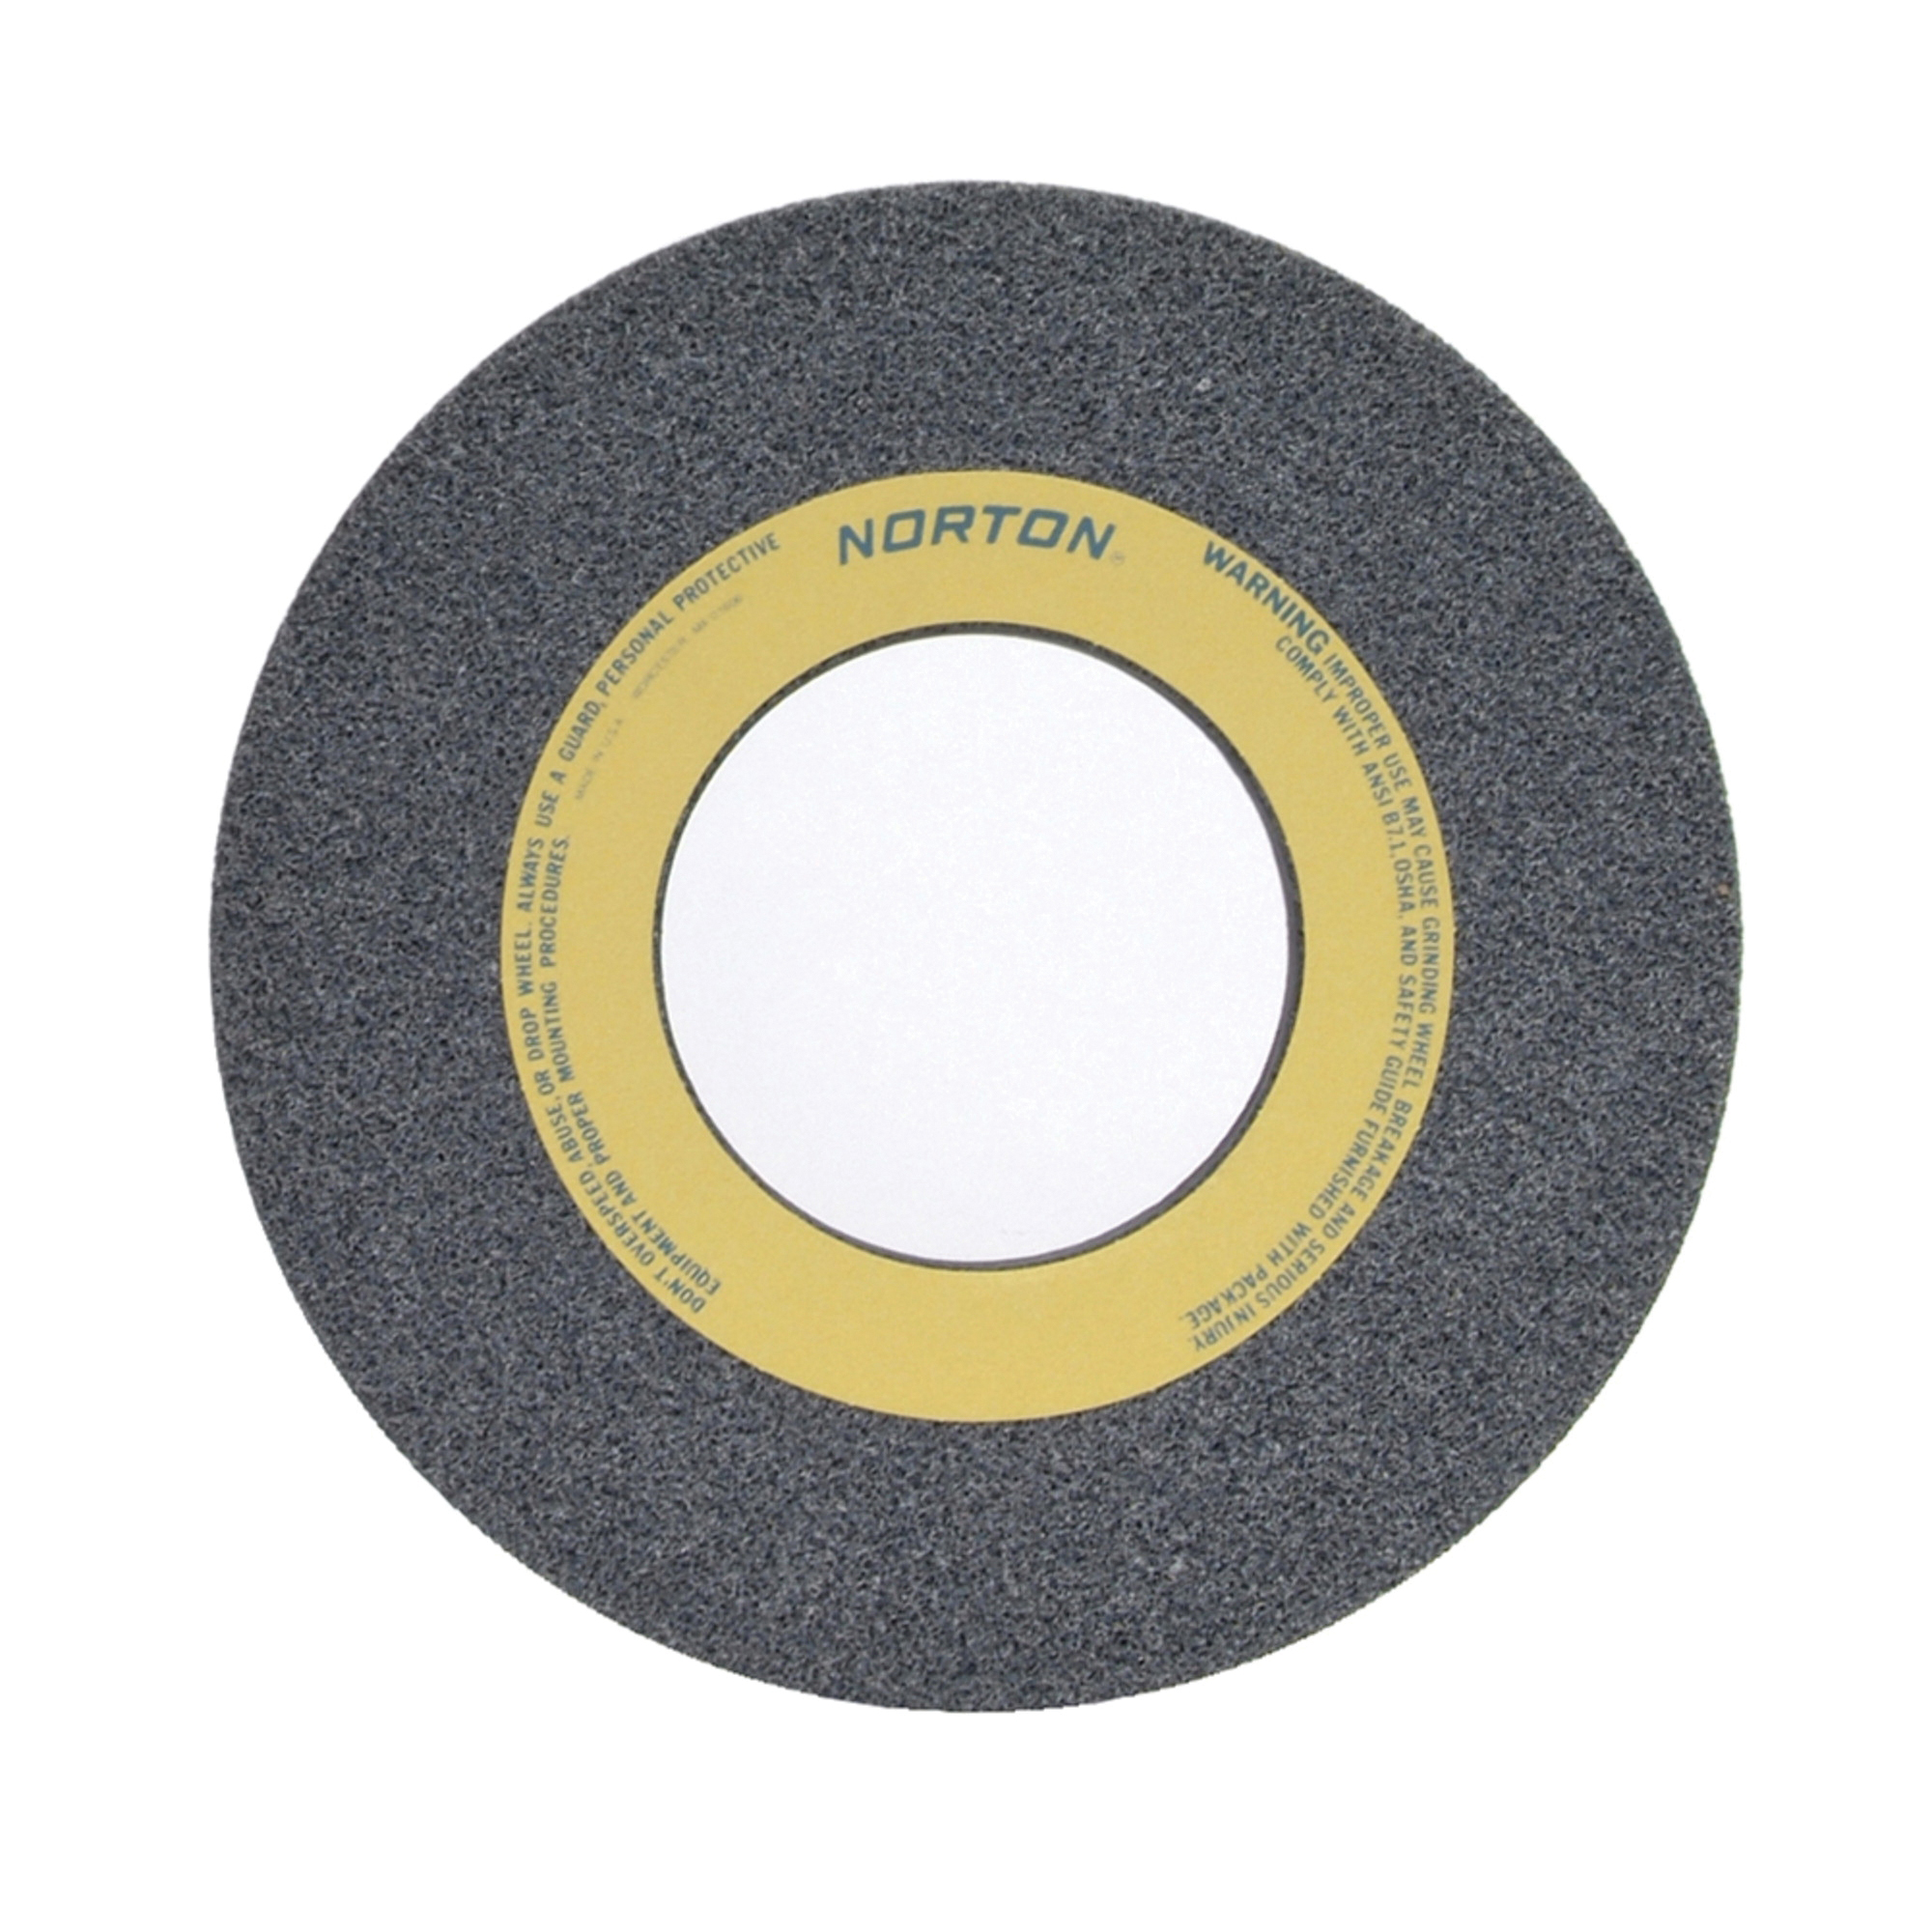 Norton® 66253364337 32A Straight Toolroom Wheel, 14 in Dia x 1-1/2 in THK, 5 in Center Hole, 46 Grit, Aluminum Oxide Abrasive